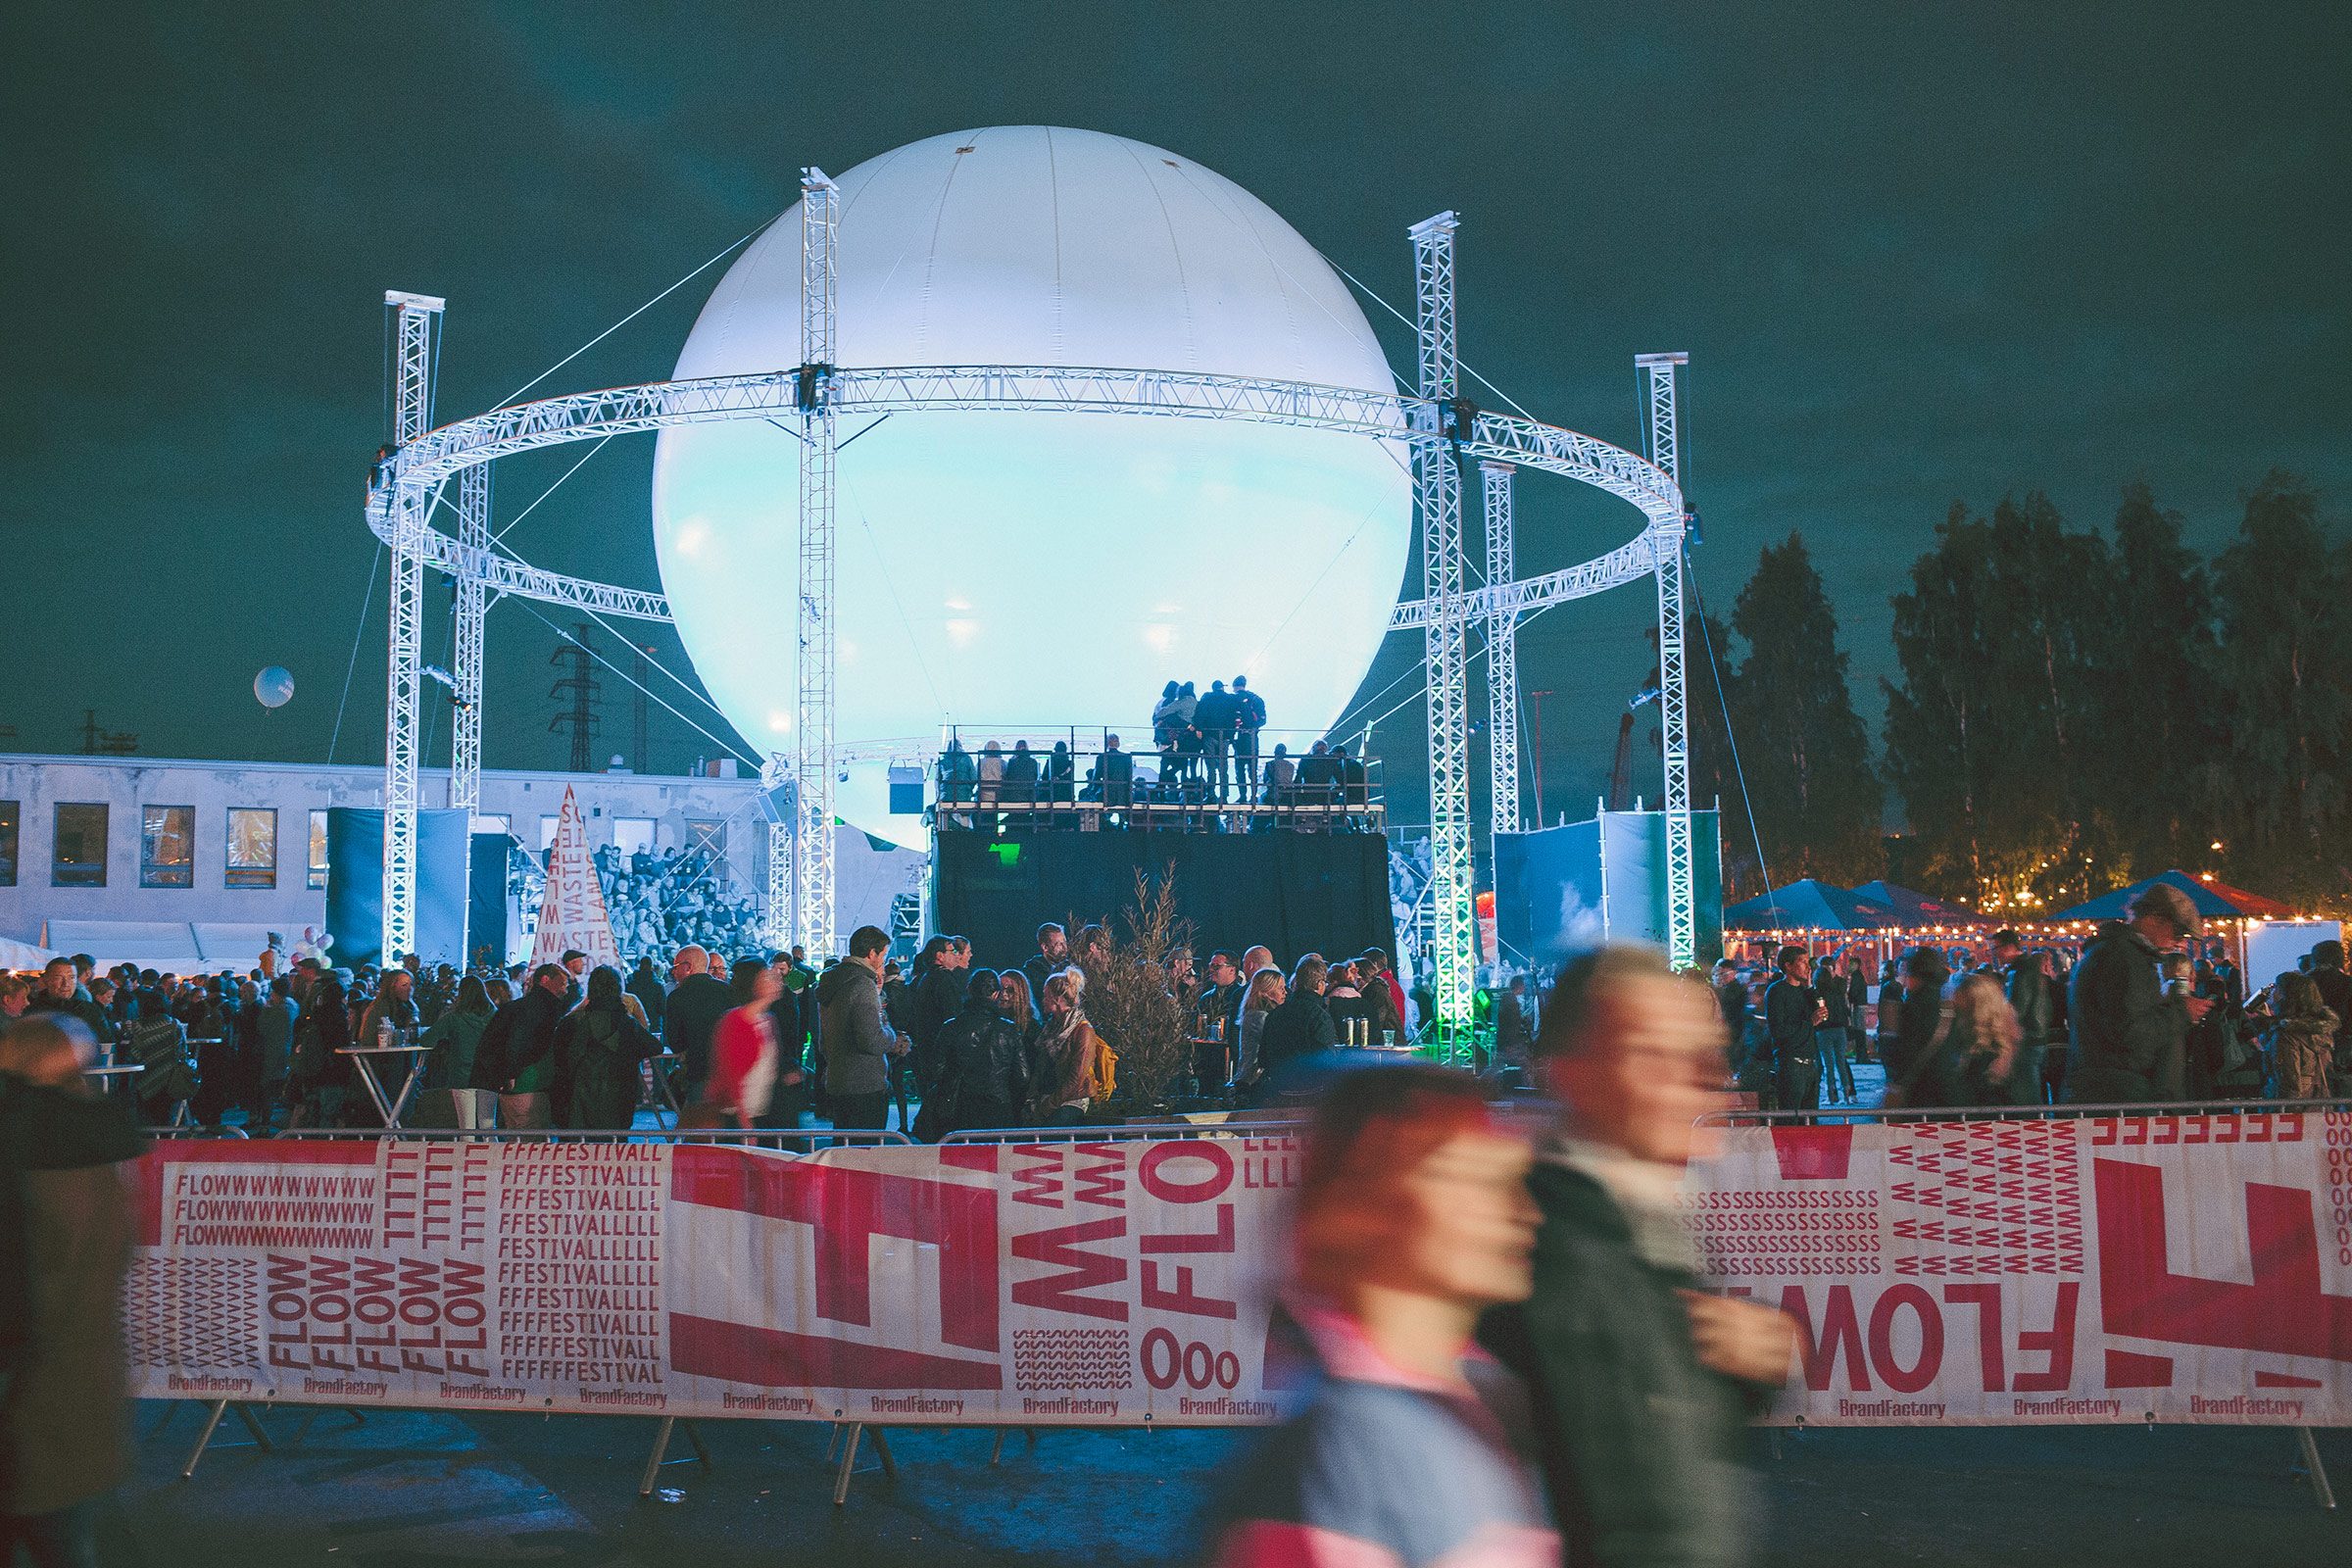 New Wastelands stage at Flow Festival 2012